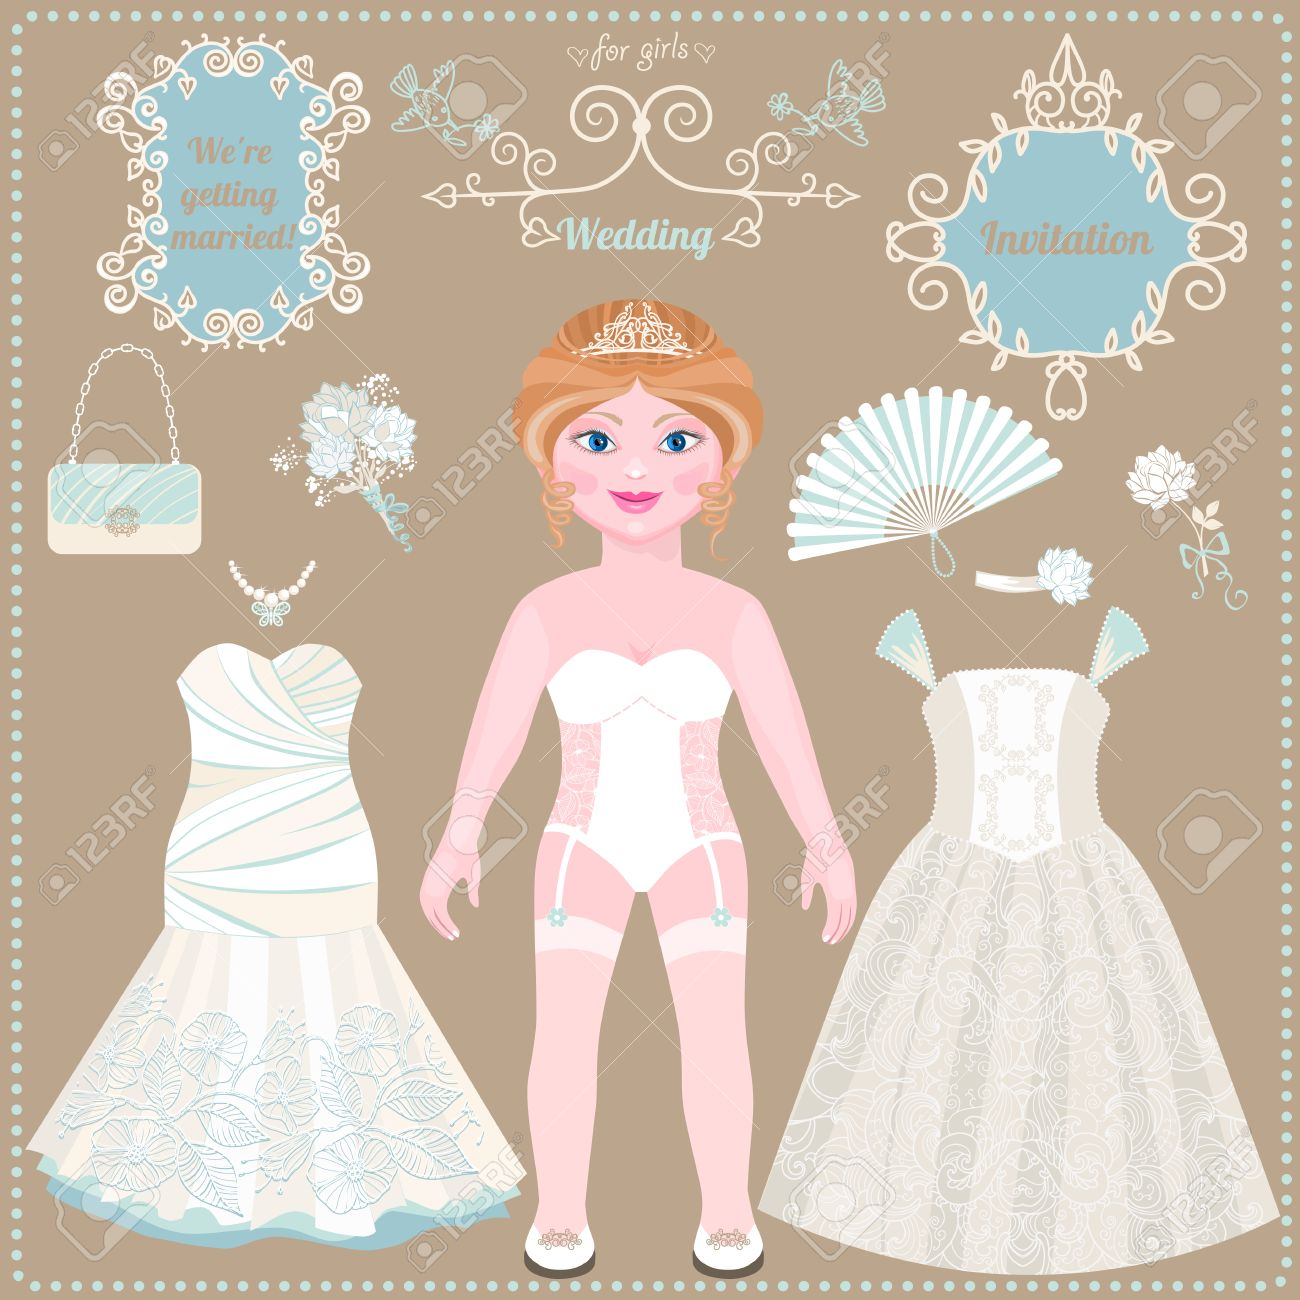 Paper doll wedding dresses and accessories ideas for wedding paper doll wedding dresses and accessories ideas for wedding invitations lovely bride pronofoot35fo Gallery